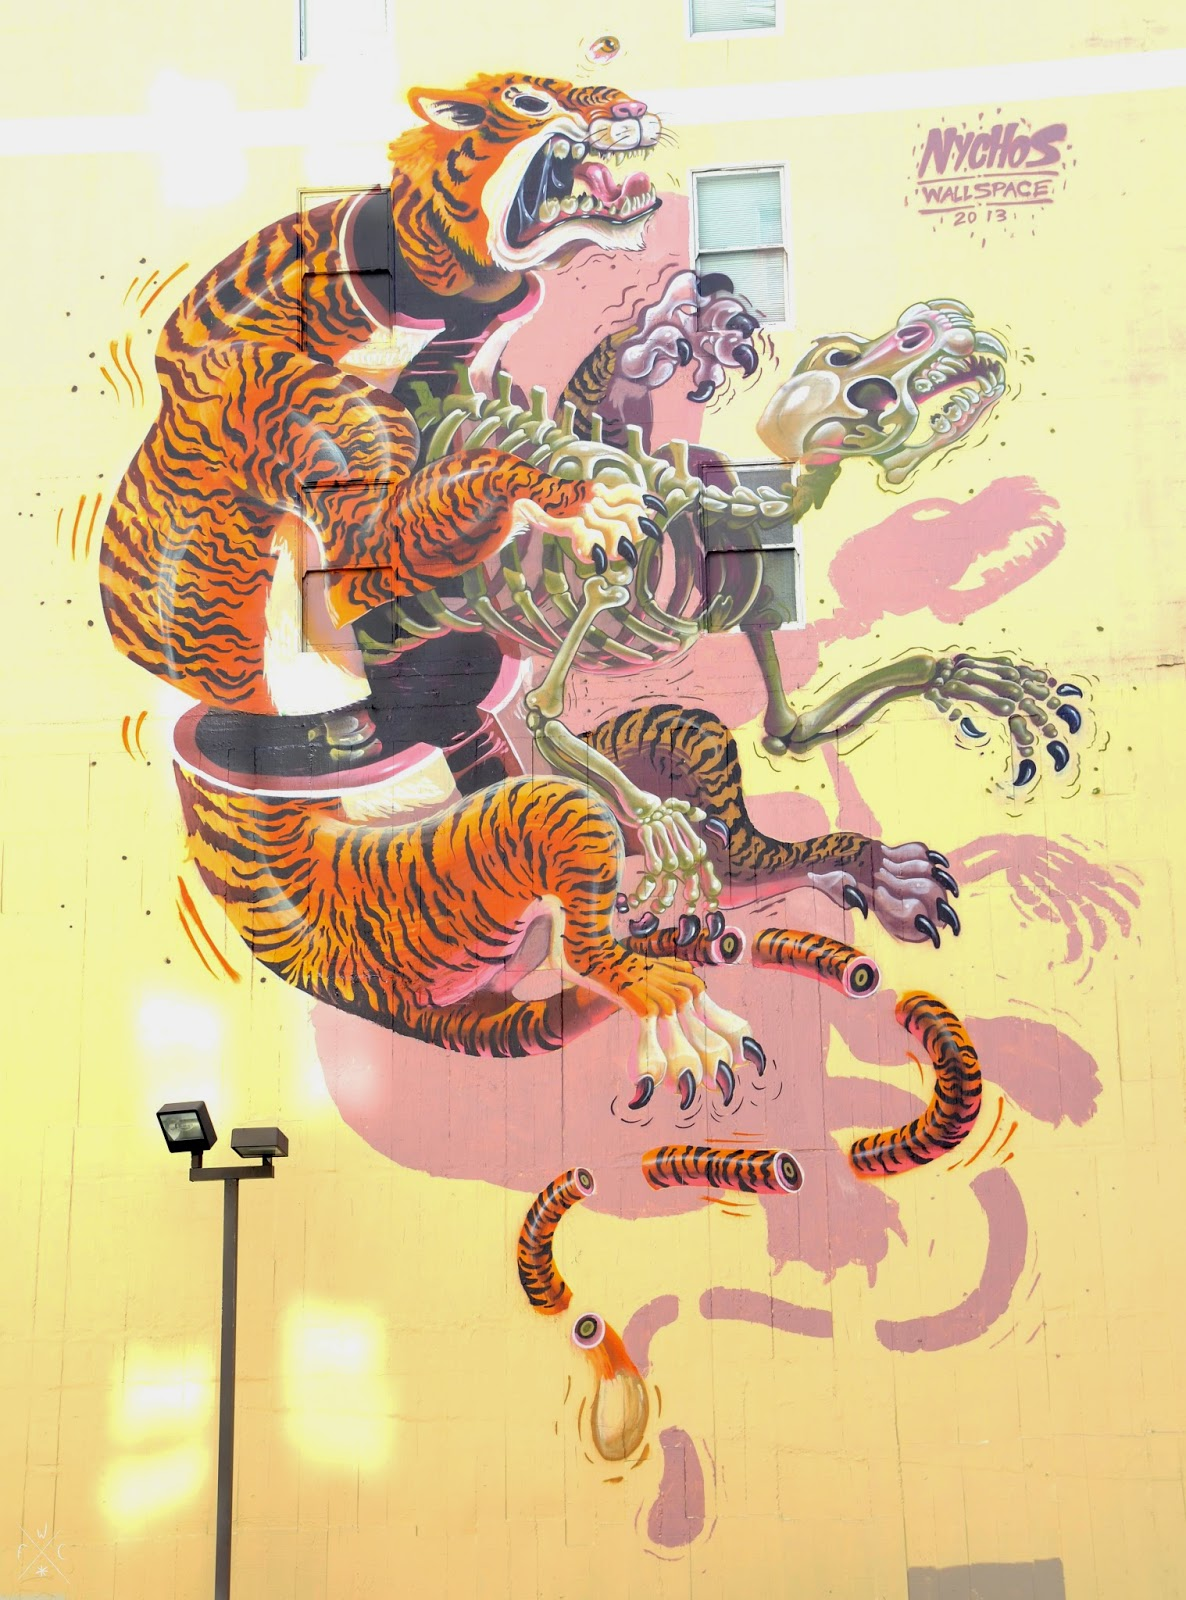 Eye of the Tiger, by Nychos - 2013